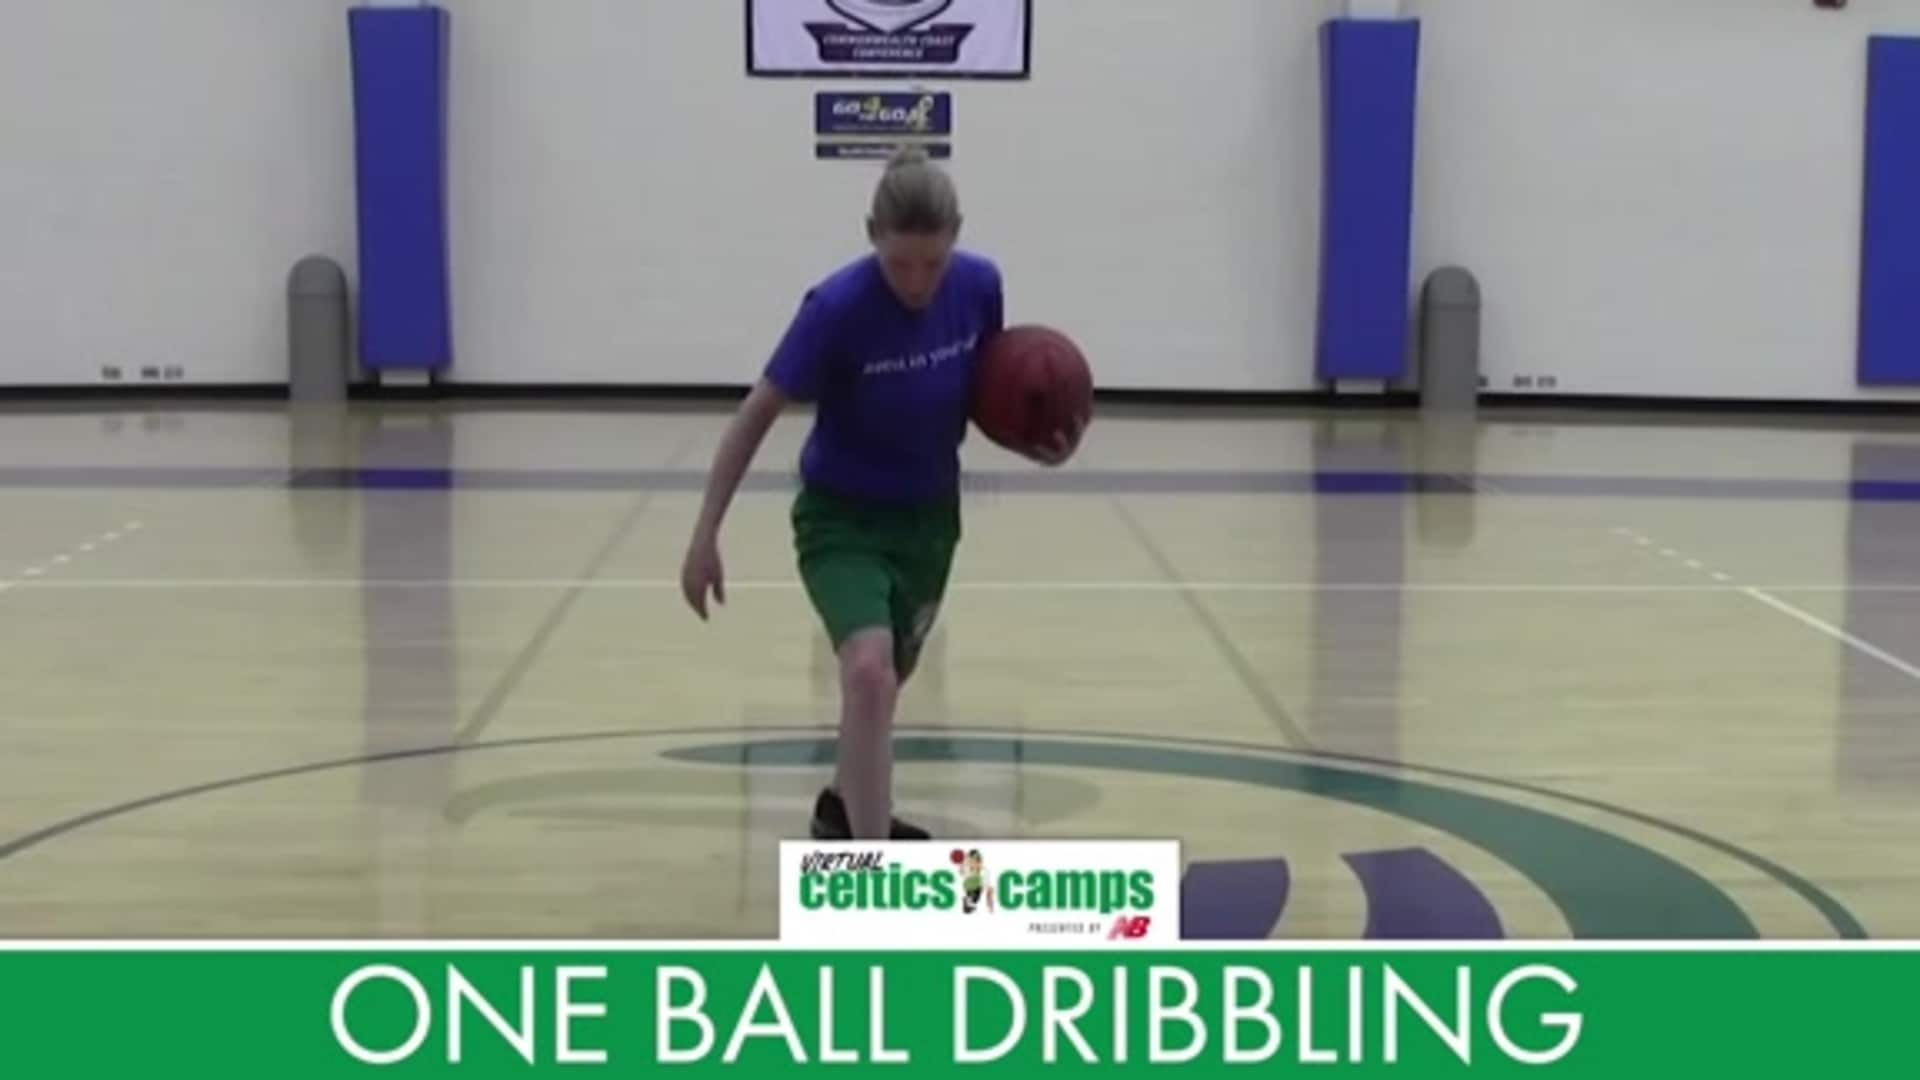 Virtual Celtics Camps - Stationary Ball Handling and Dribbling PART 2